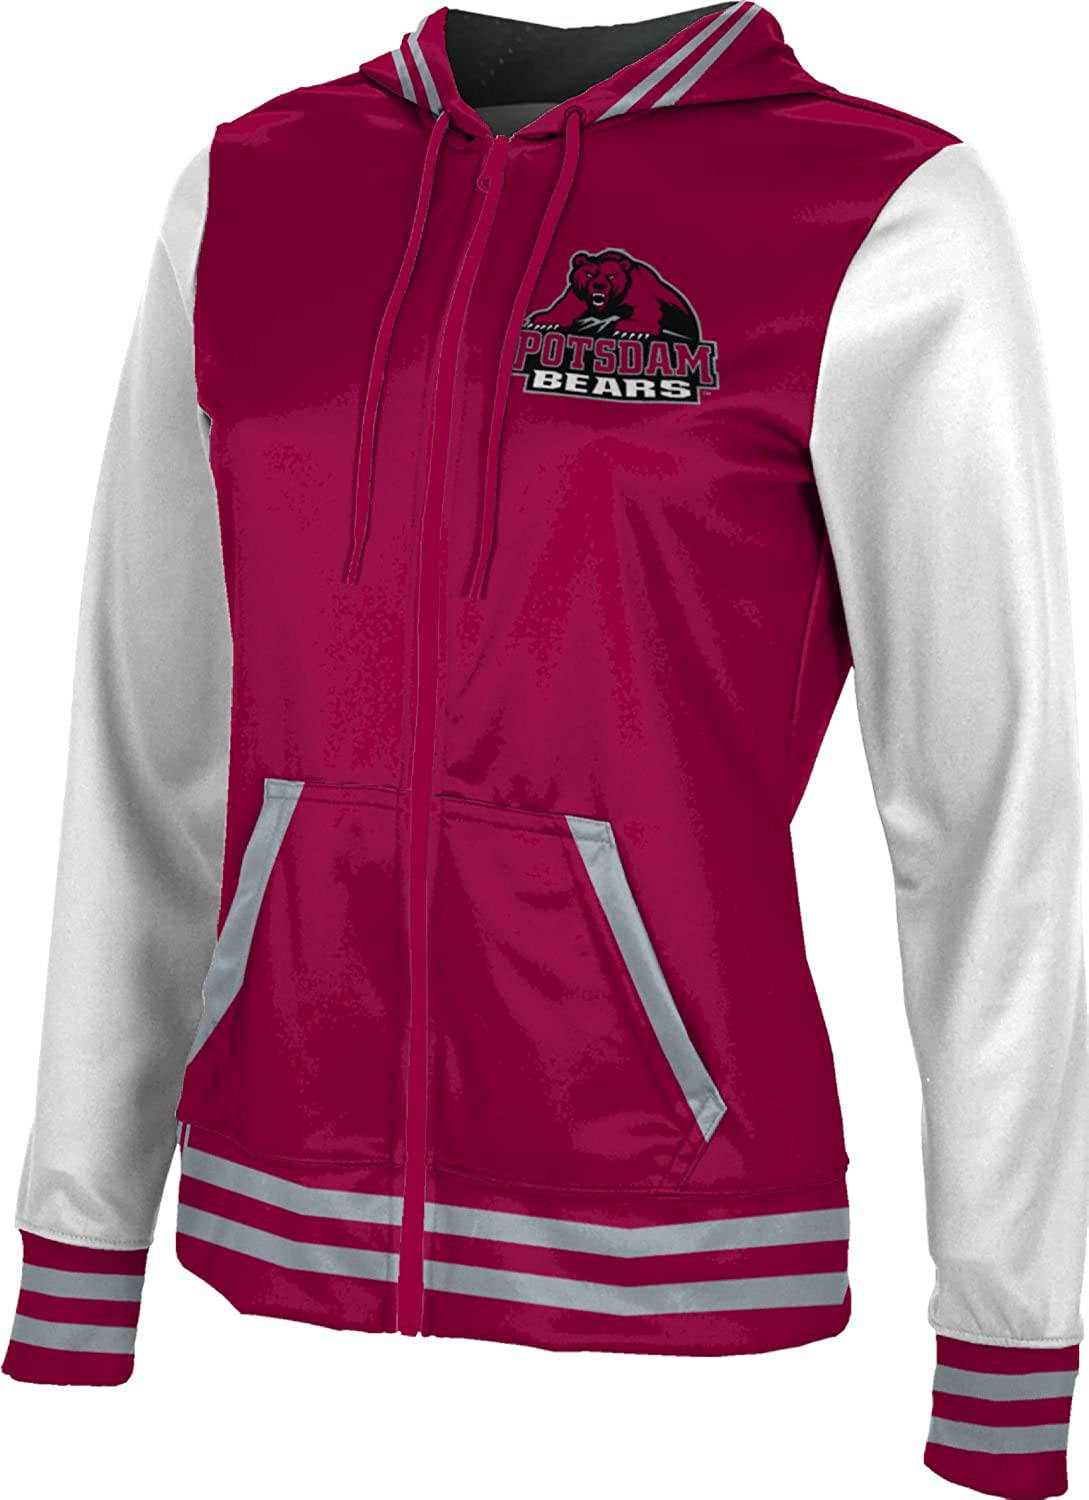 Women's State University of New York at Potsdam Letterman Fullzip Hoodie